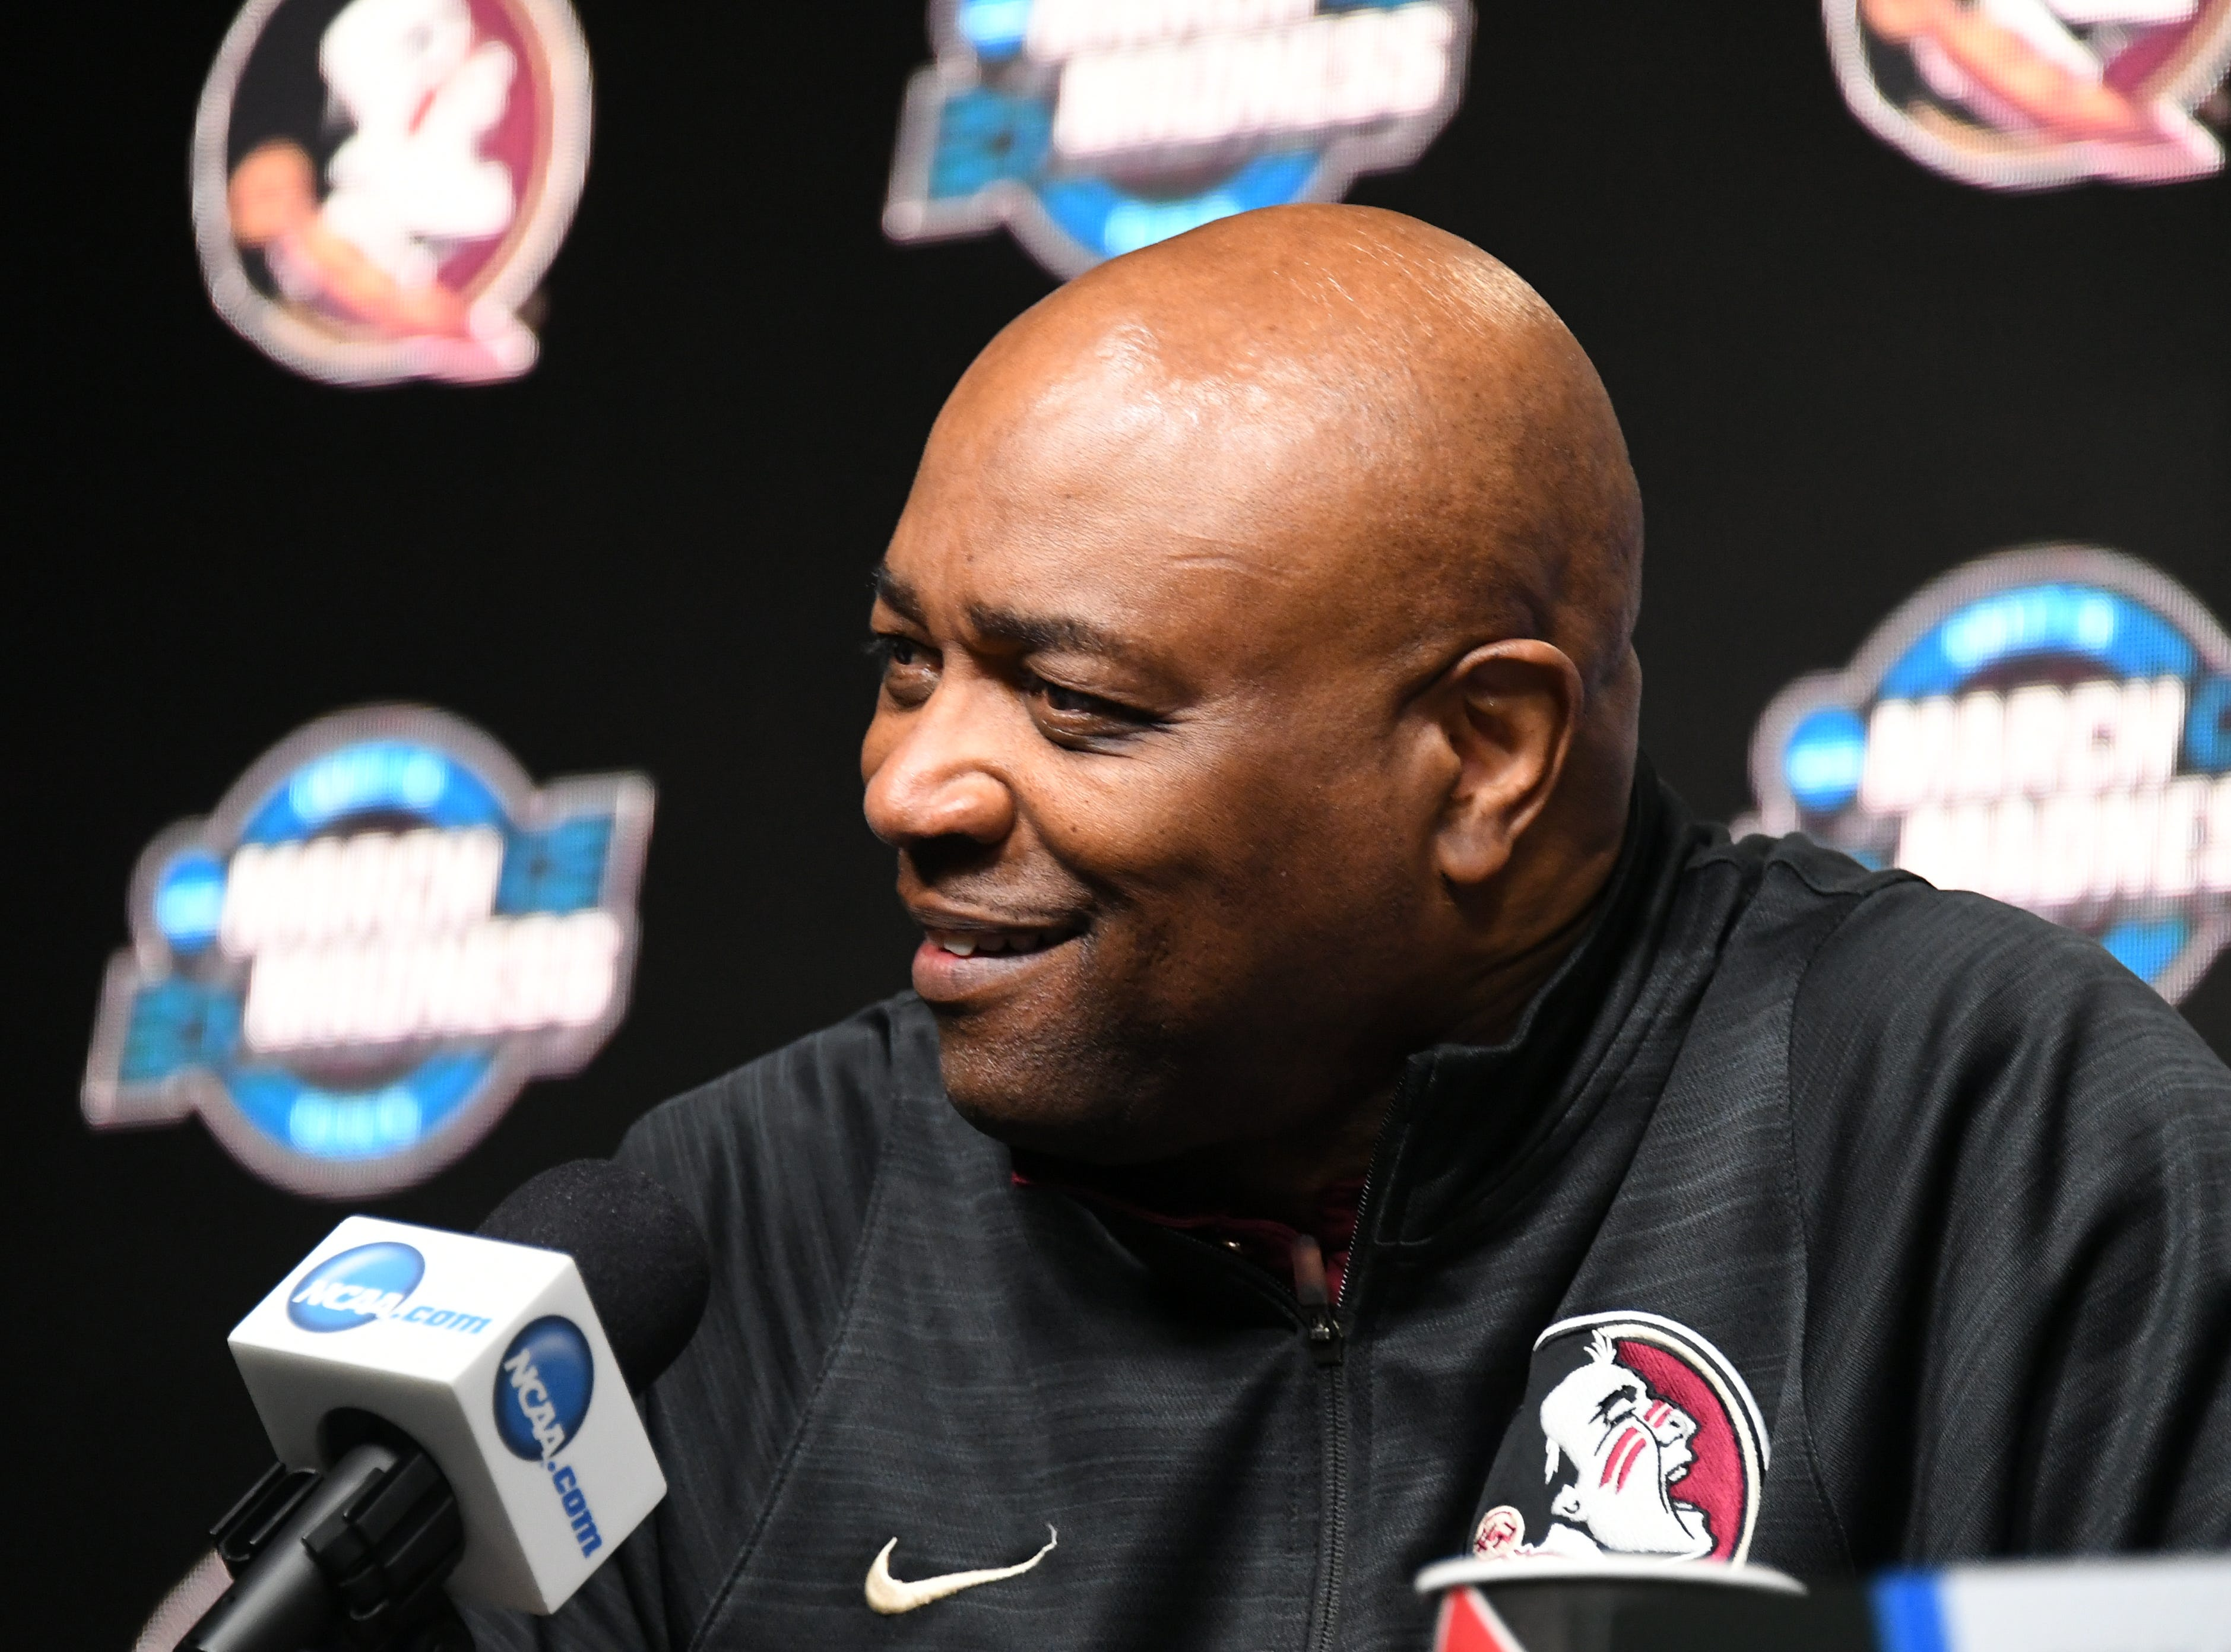 March 27, 2019; Anaheim, CA, USA; Florida State Seminoles head coach Leonard Hamilton speaks with media during practice for the west regional of the 2019 NCAA Tournament at Honda Center. Mandatory Credit: Richard Mackson-USA TODAY Sports